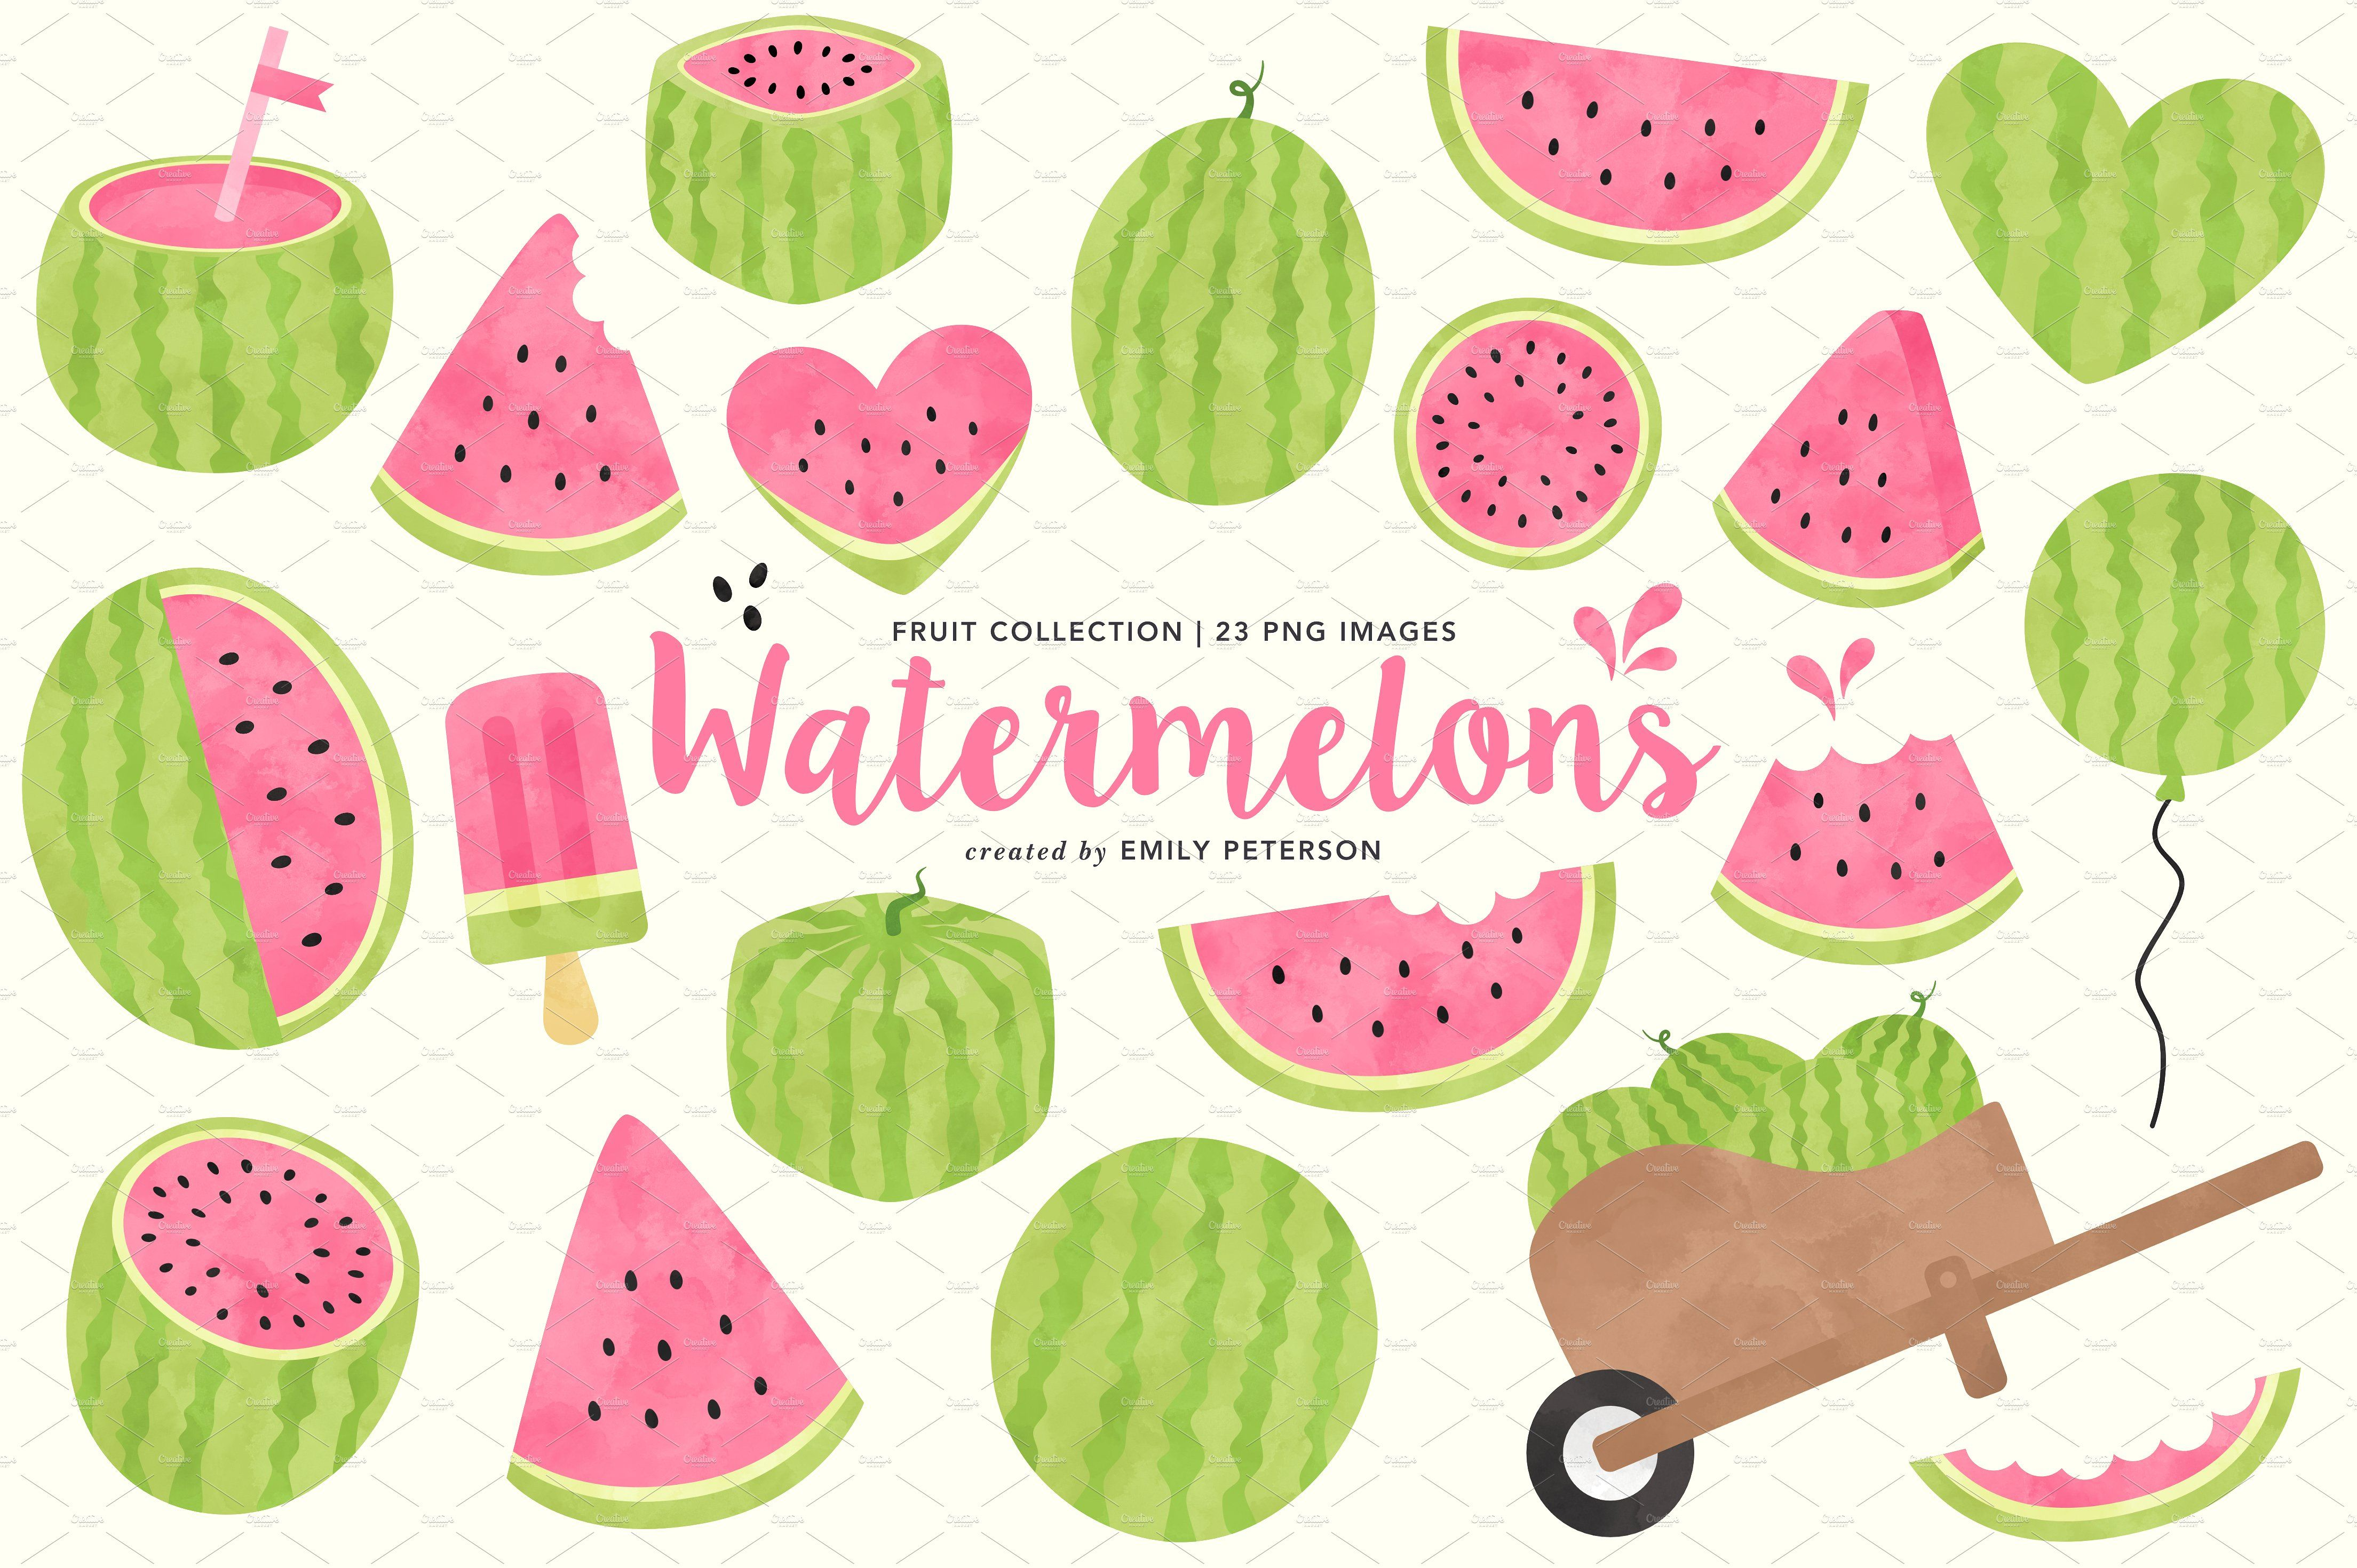 Watermelon clipart party. Watermelons graphic designs for